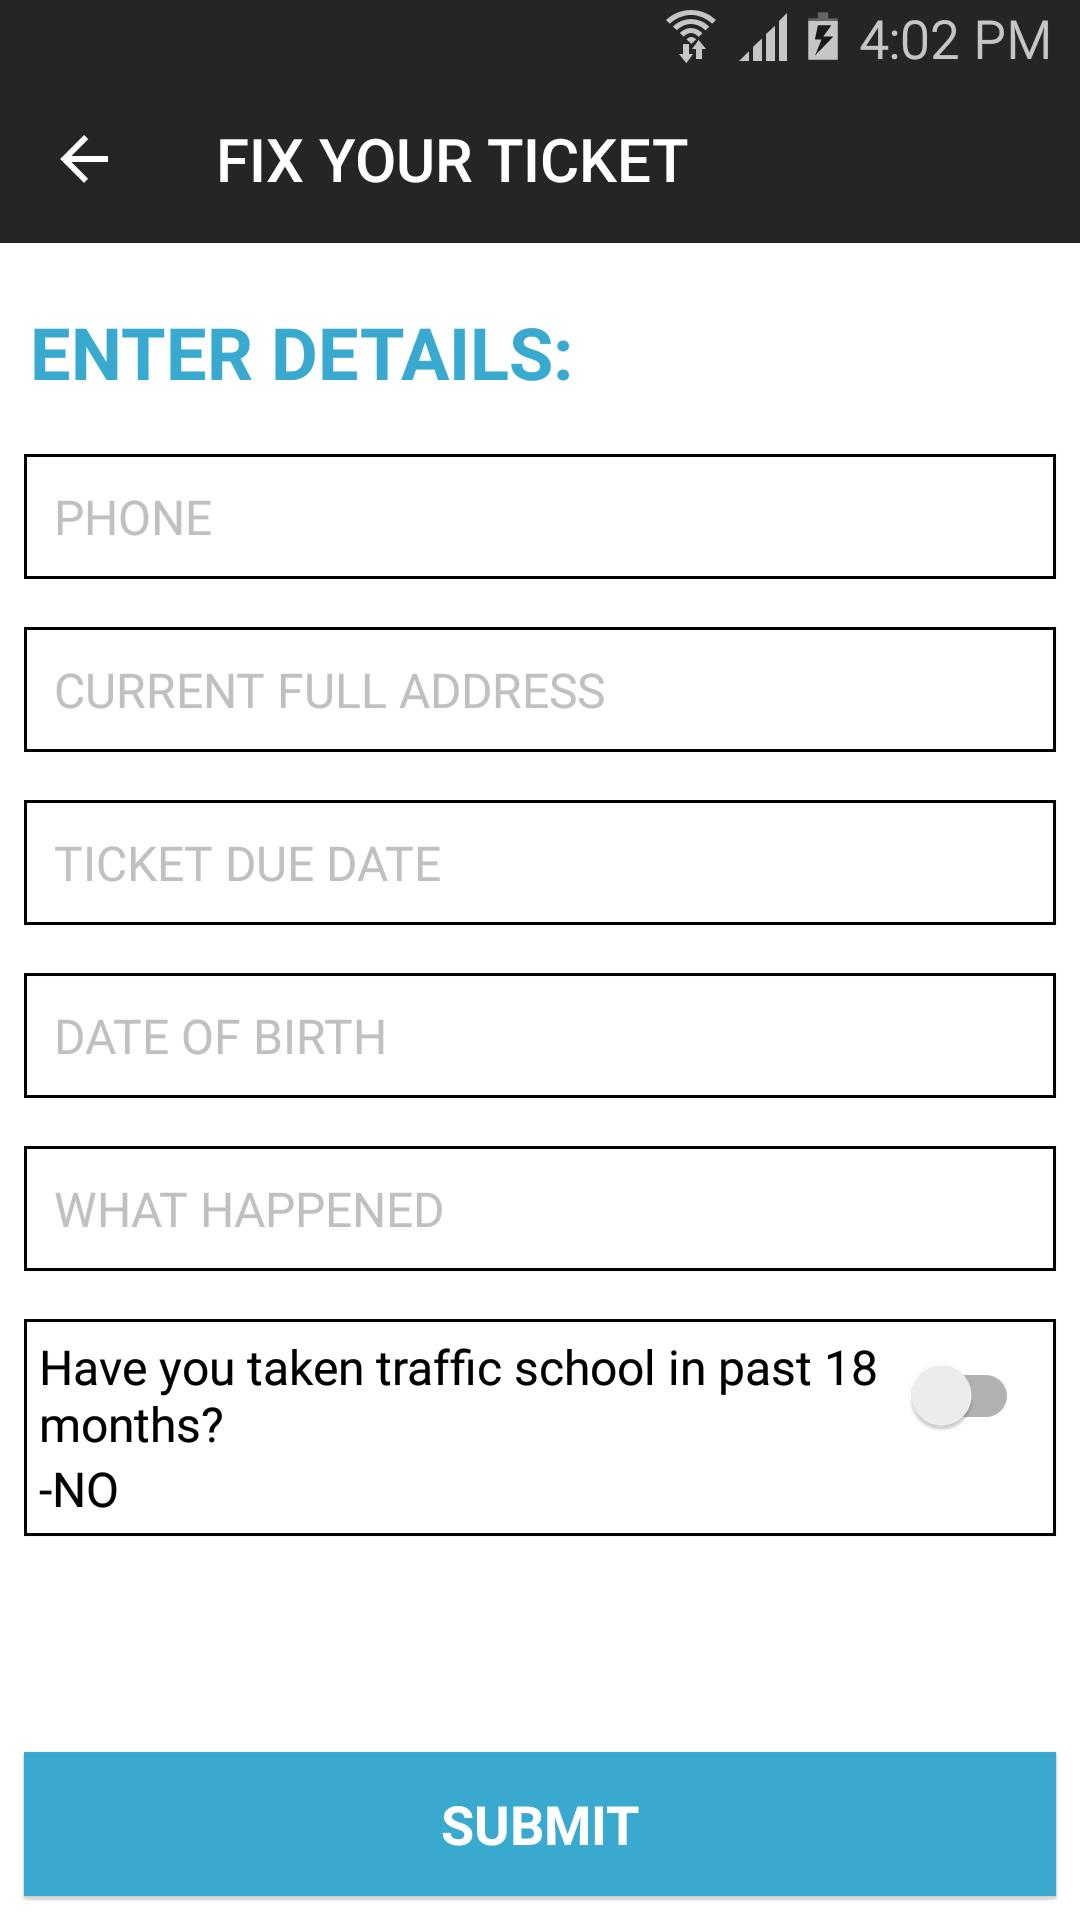 Fix A Ticket >> Fix Your Ticket Roberts Roberts Law Firm For Android